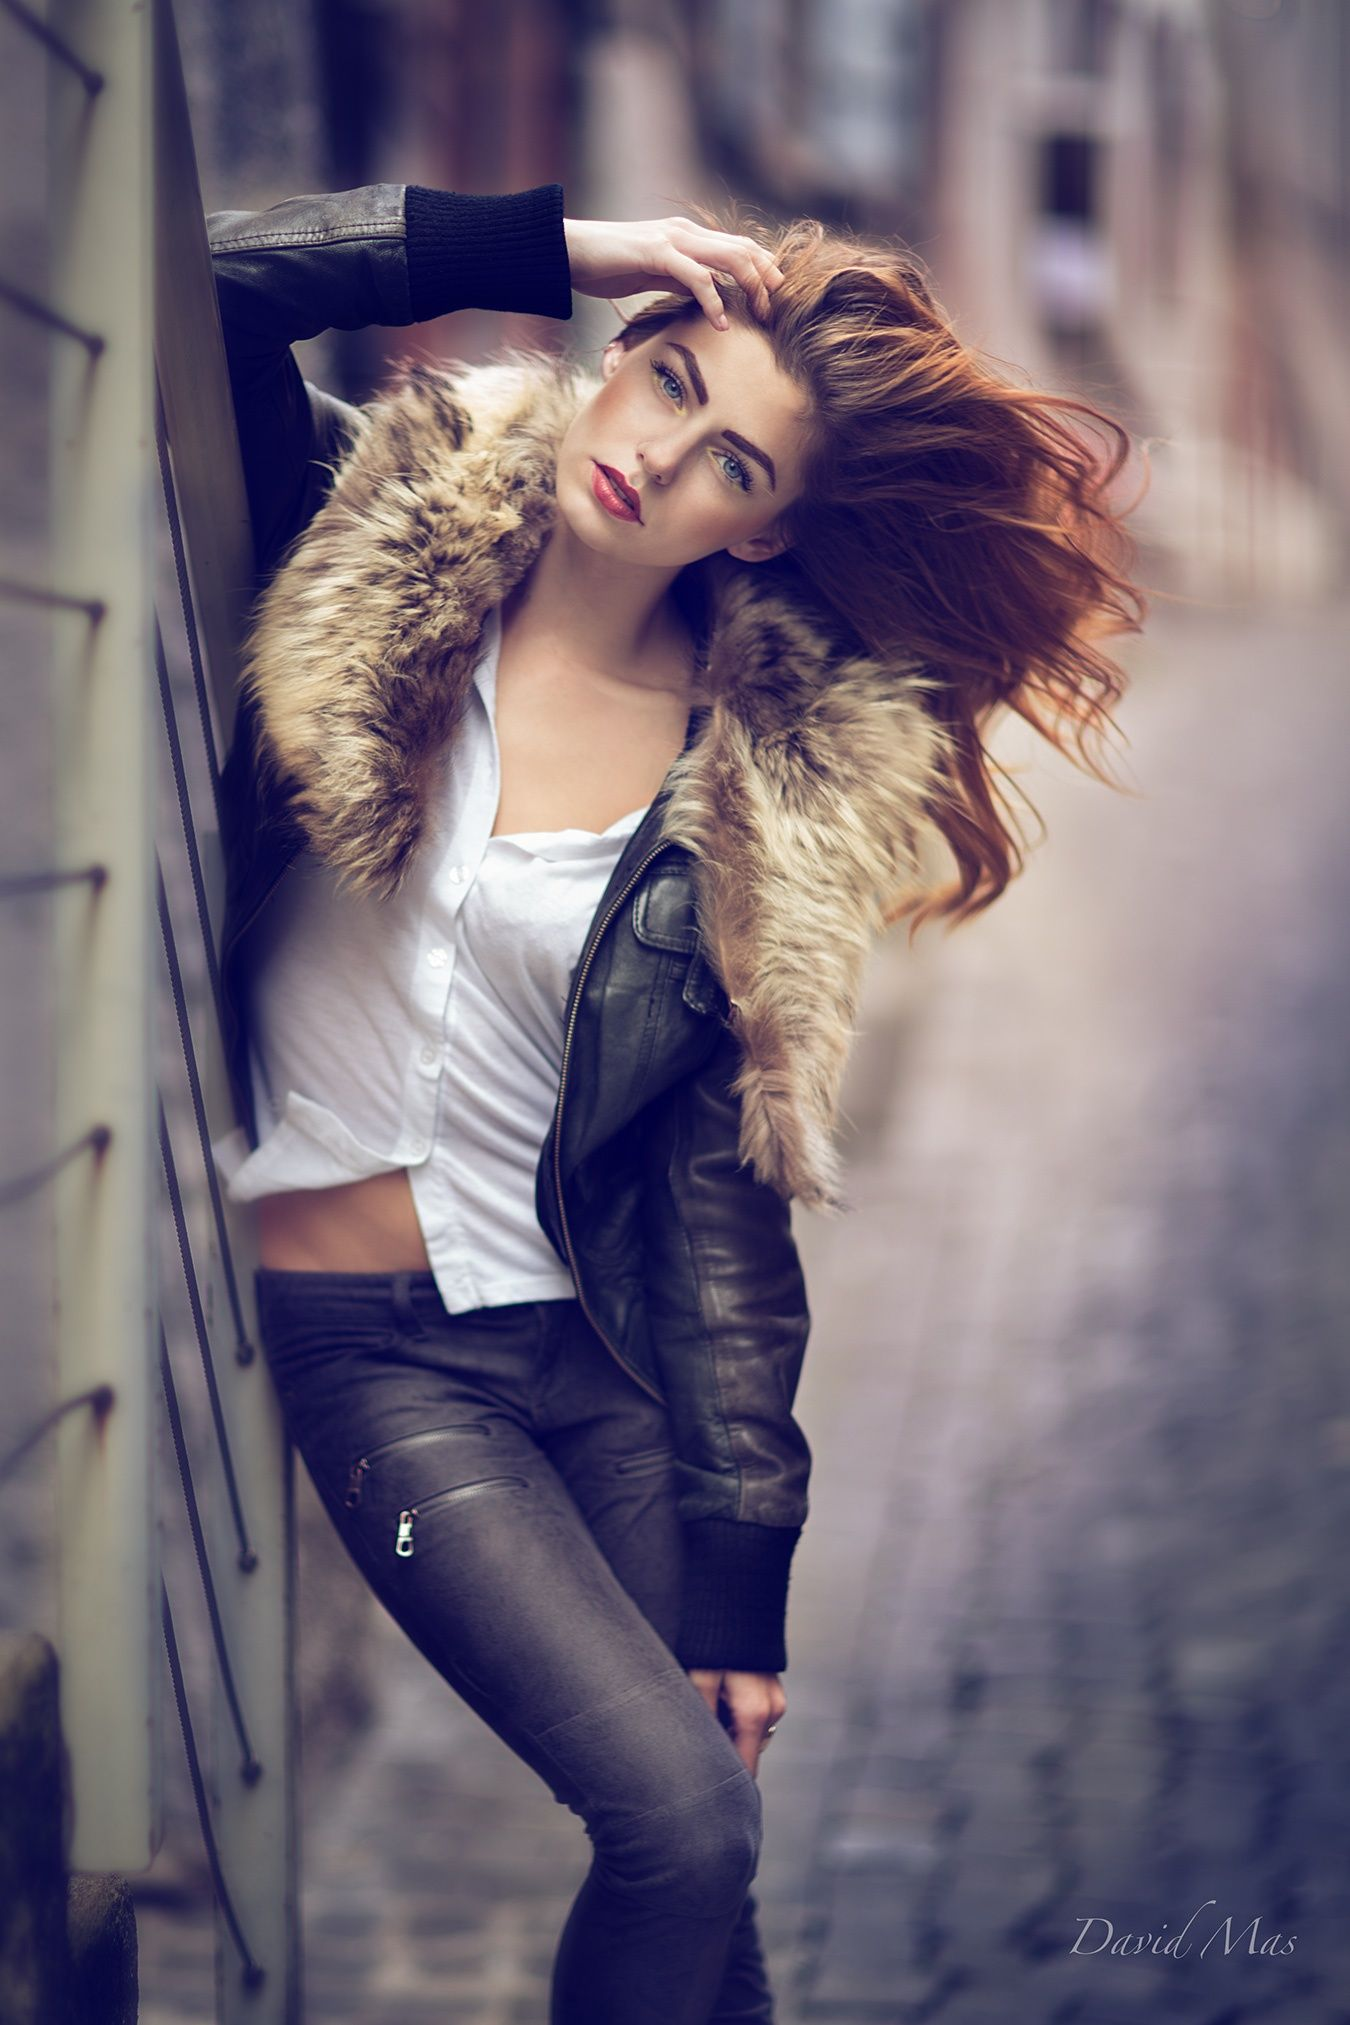 Best 25 photoshoot ideas for models ideas on pinterest for Photoshoot themes for models